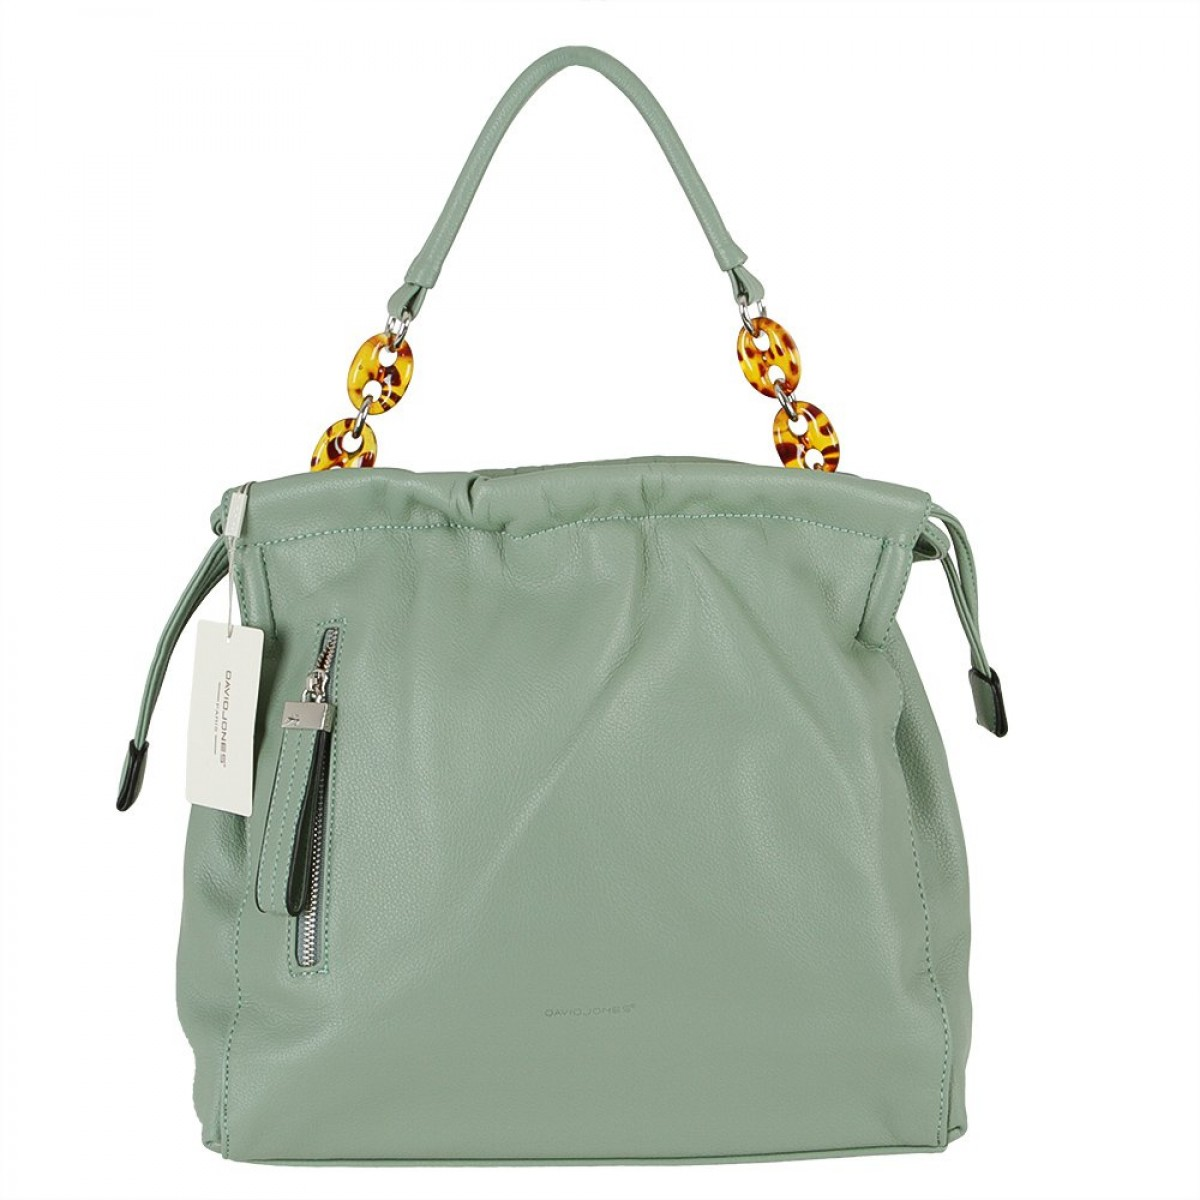 Жіноча сумка David Jones 6319-3 LIGHT GREEN